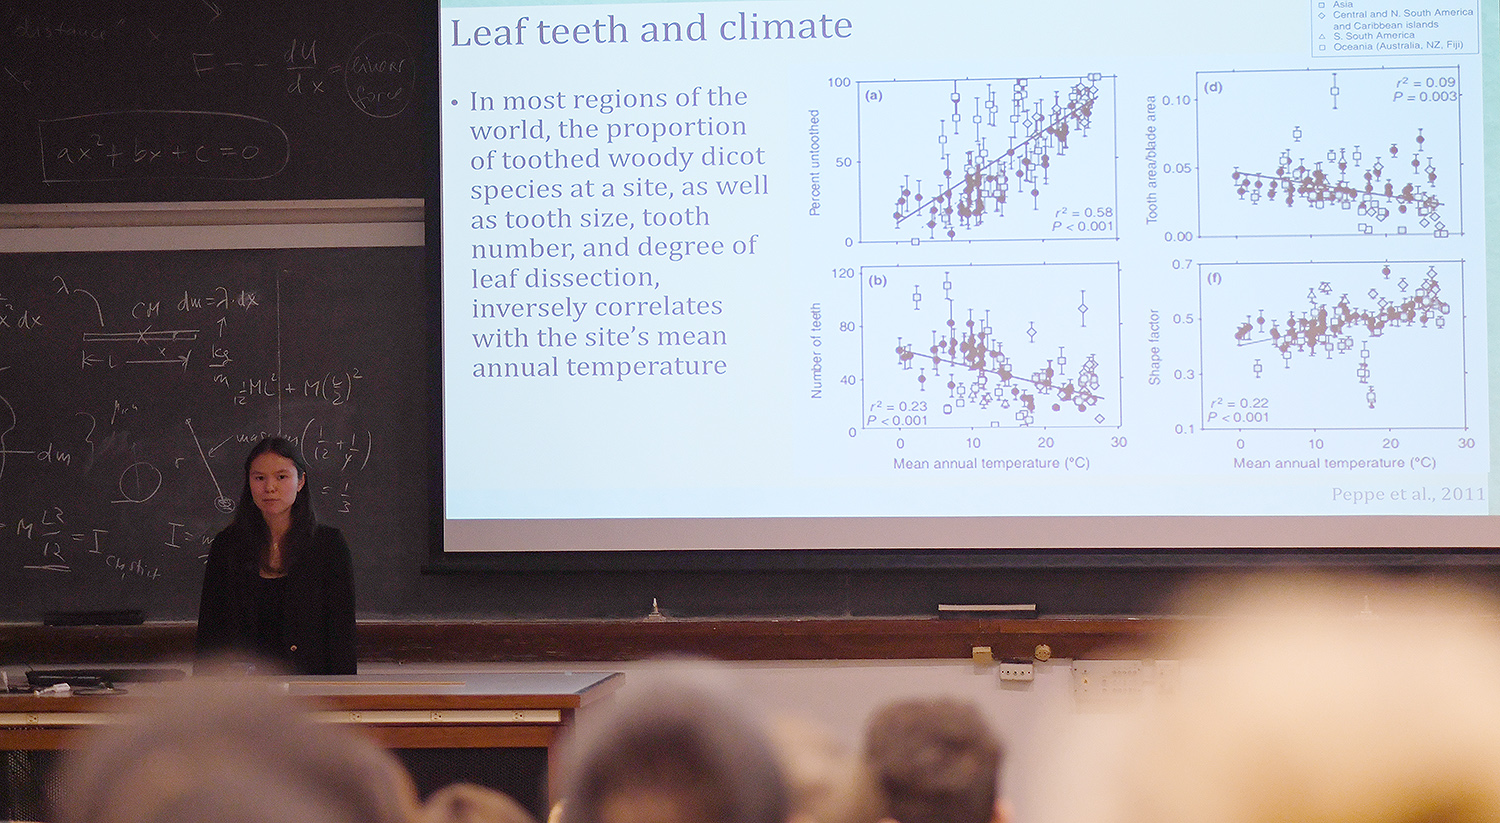 Plants in cold climates, McKee explained, are likely to have leaves that are more dissected and have larger teeth than plants growing in warmer climates.